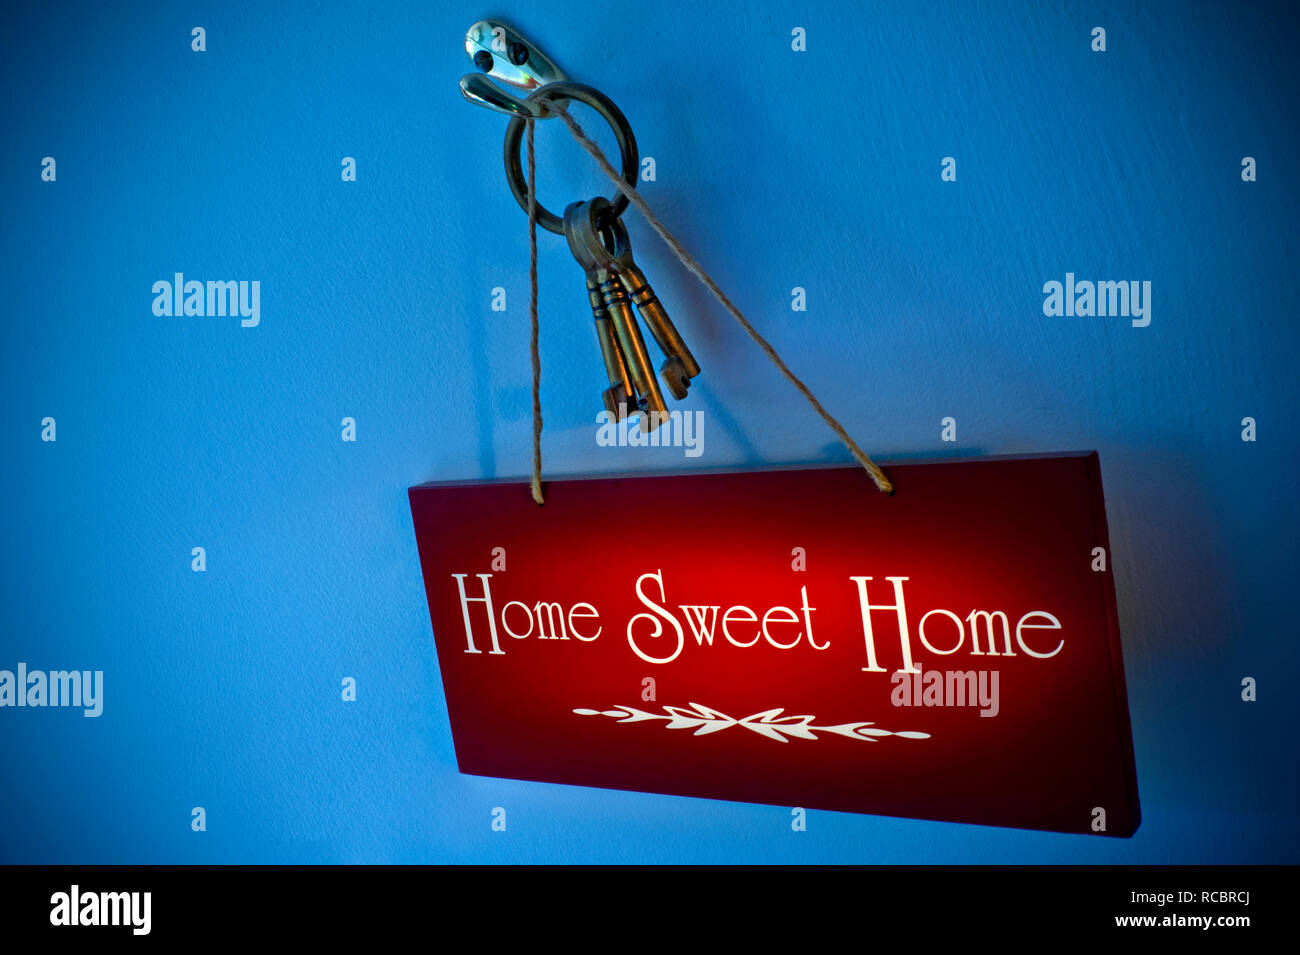 Atmospheric Concept Home Owner 'Home Sweet Home' sign hanging with house keys on hook with small shaft of warm light illuminating the sign with cool light surrounding - Stock Image